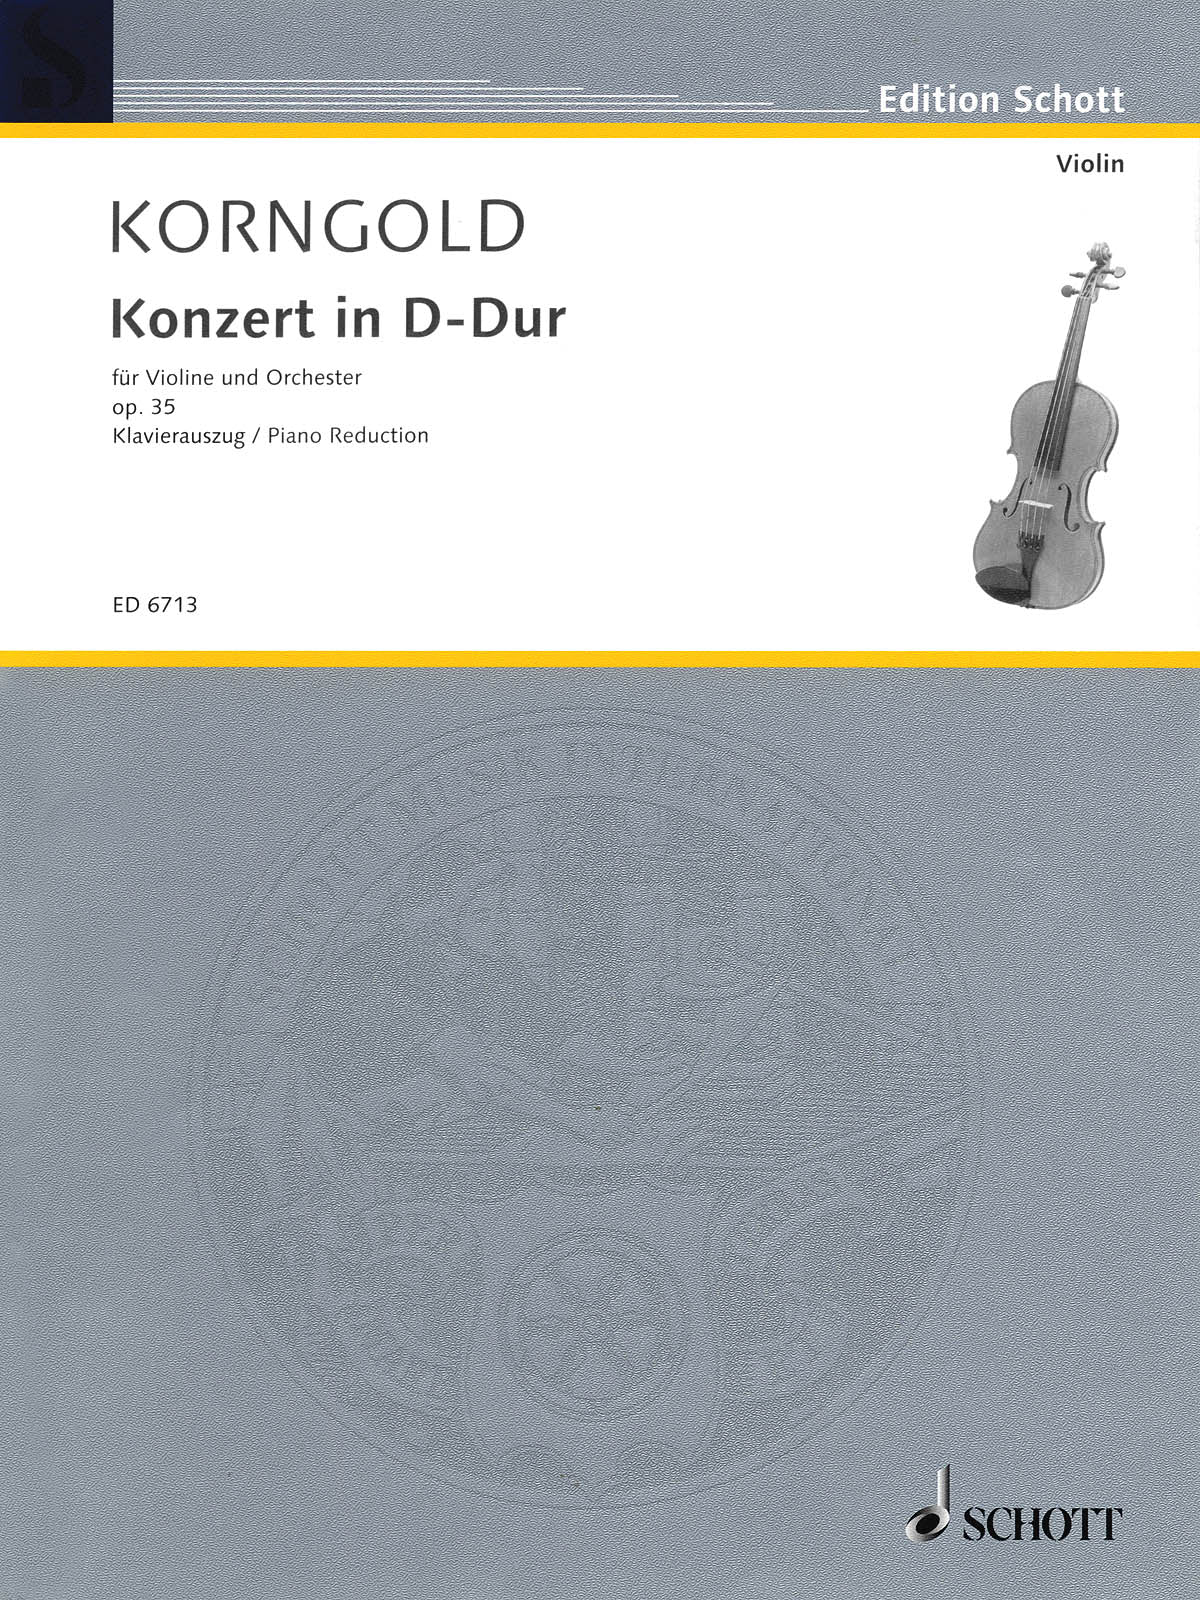 Korngold: Violin Concerto in D Major, Op. 35